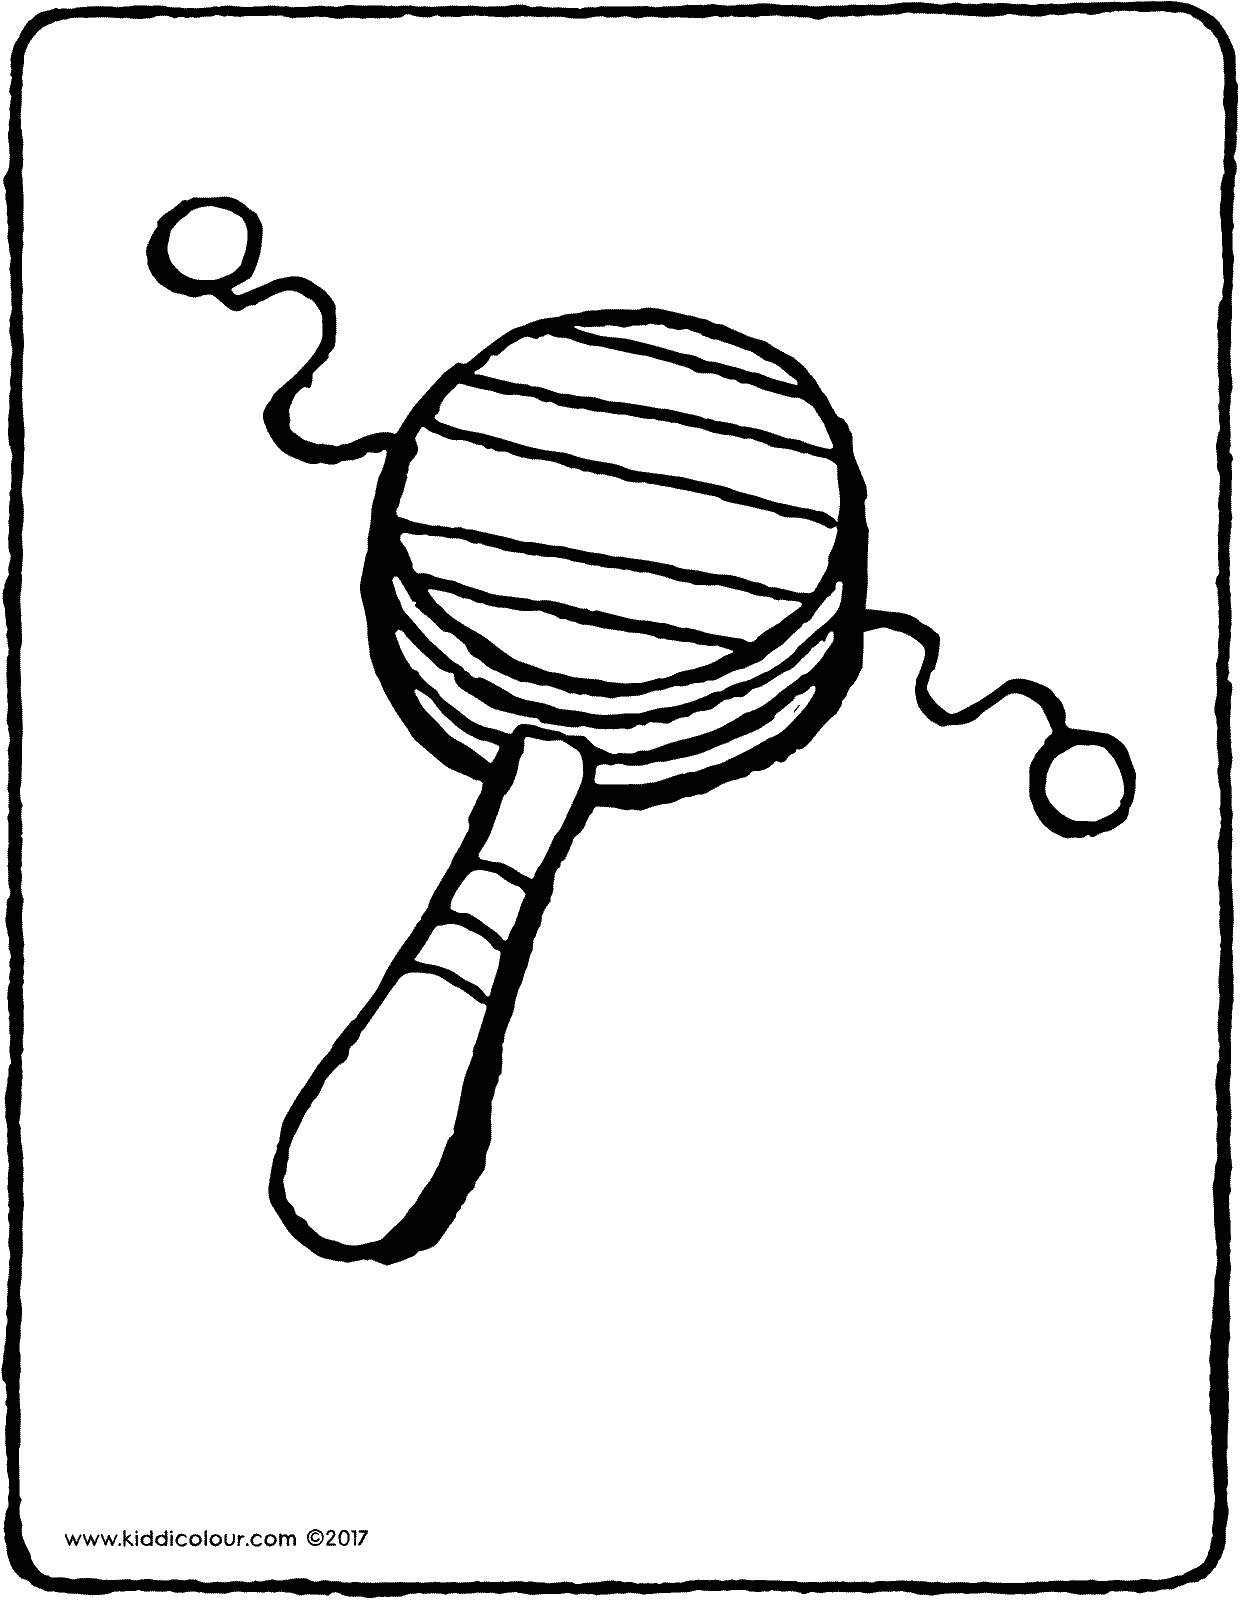 pellet drum colouring page page drawing picture 01V